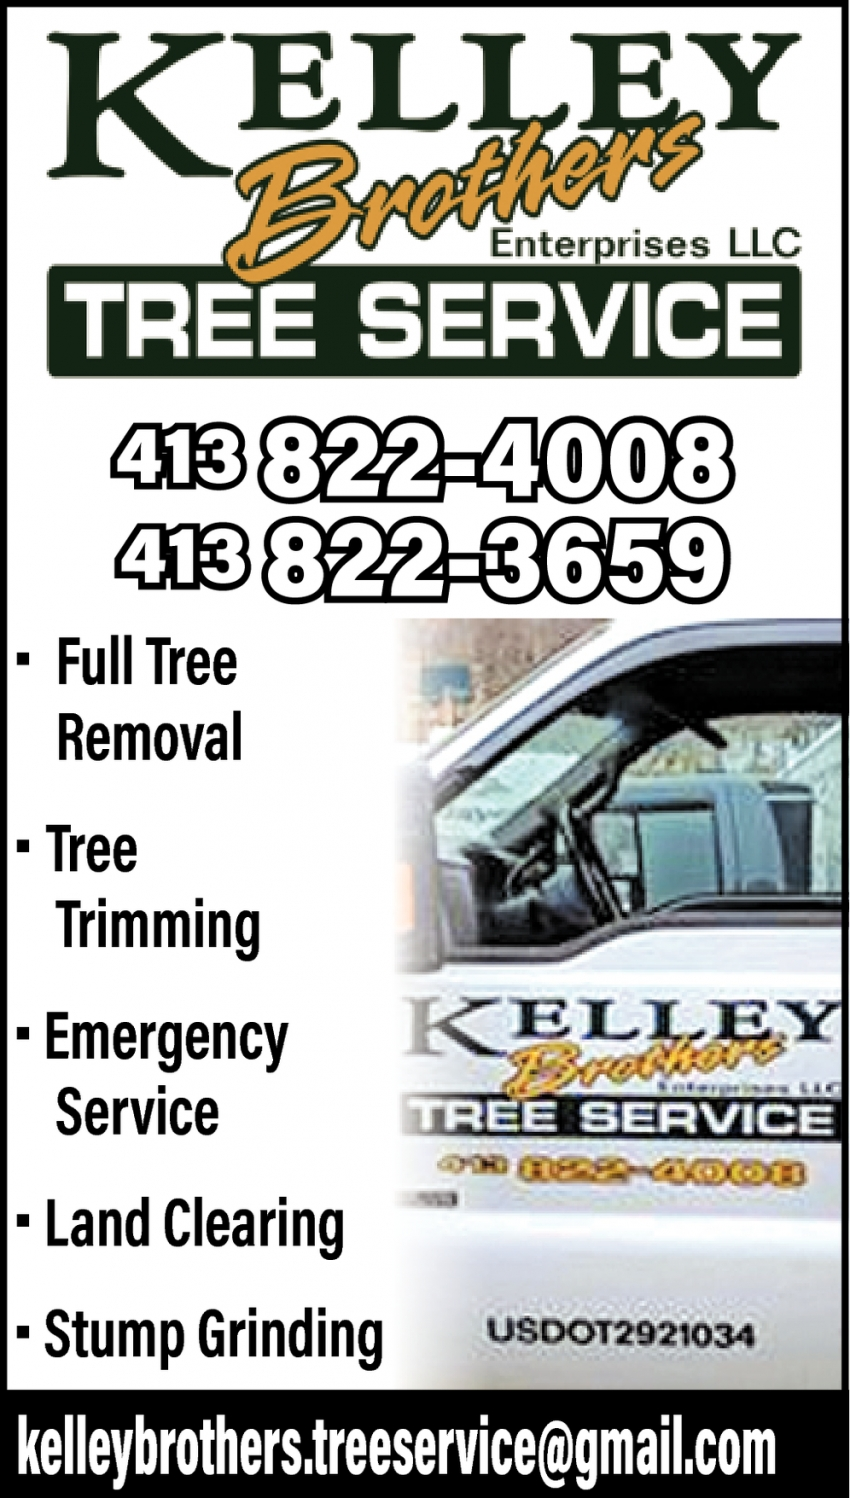 Full Tree Removal